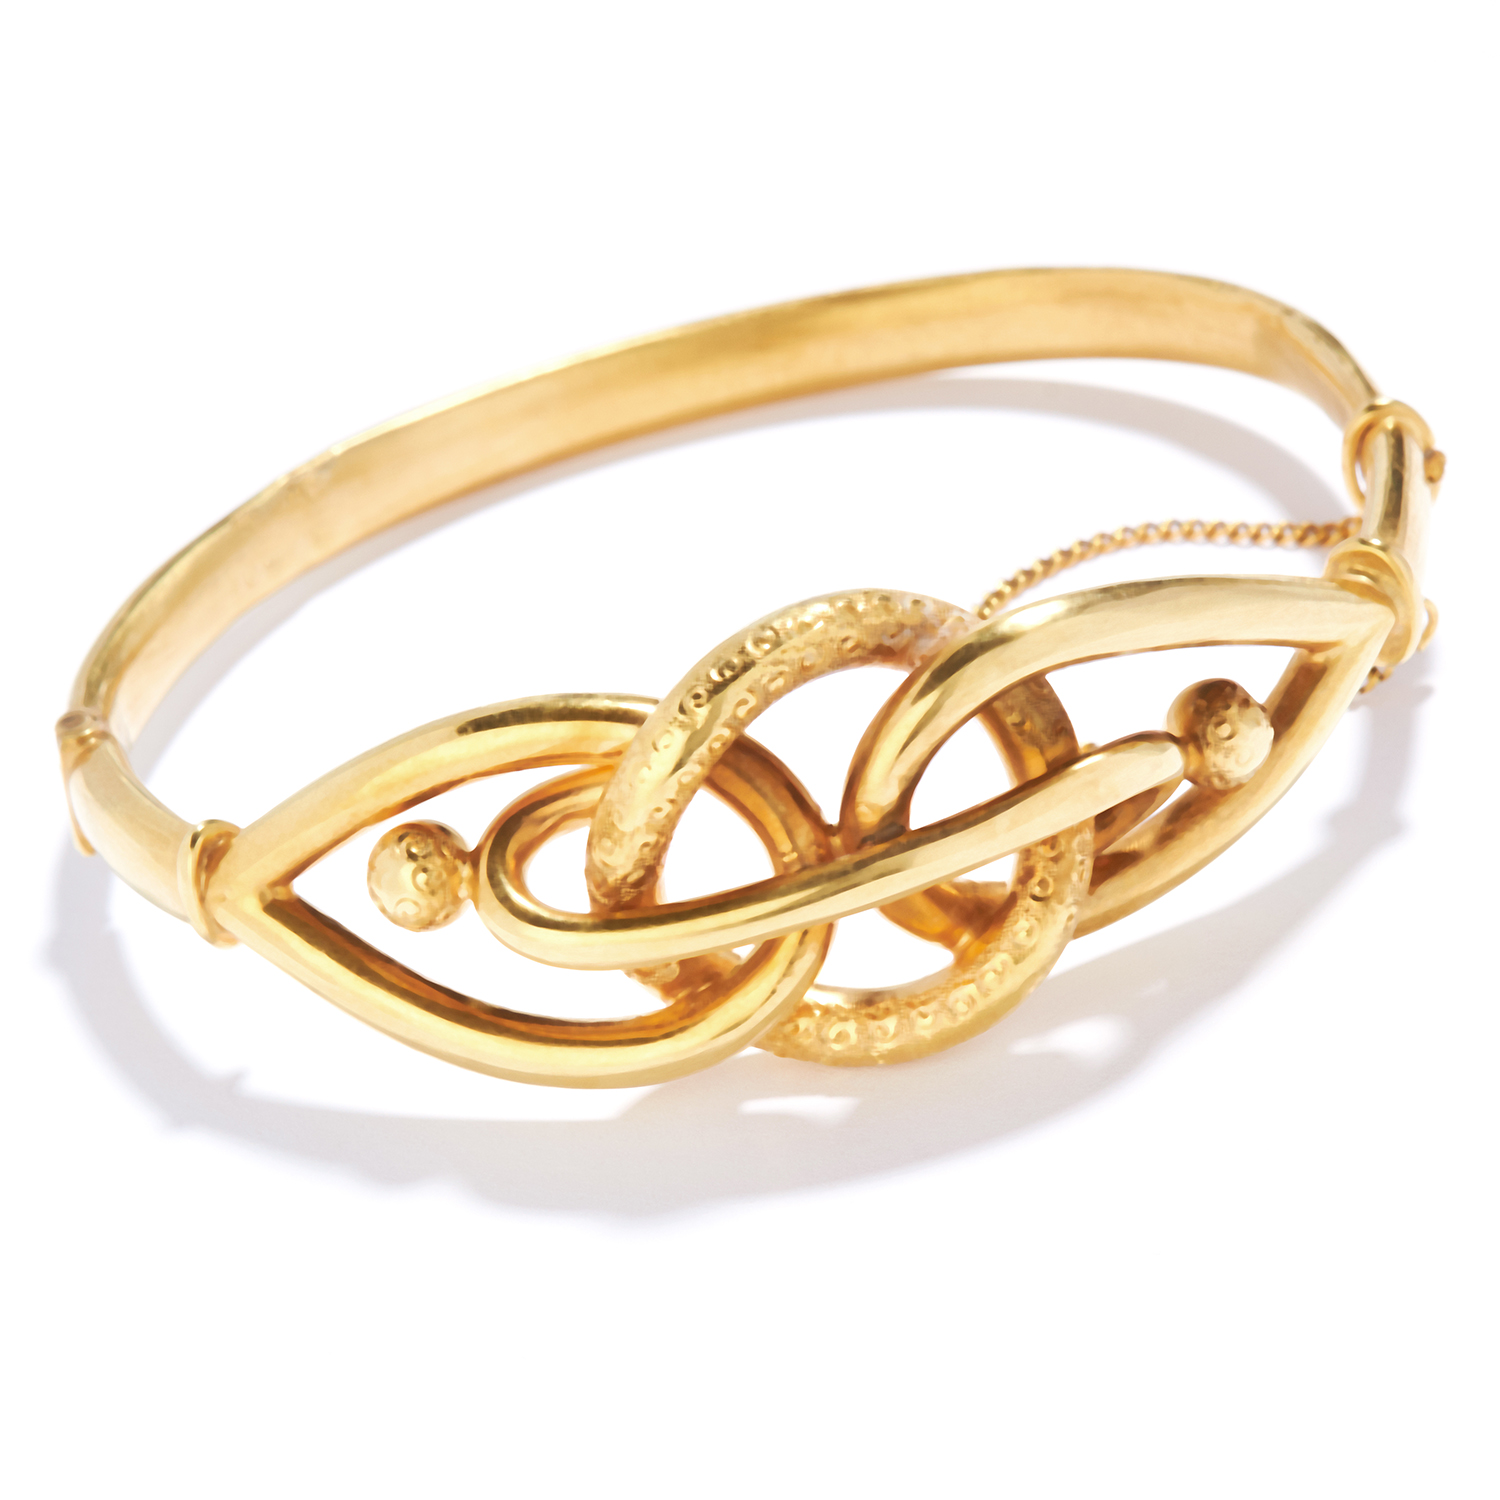 ANTIQUE GOLD KNOT BANGLE in yellow gold, in twisted Celtic knot design, unmarked, 6cm